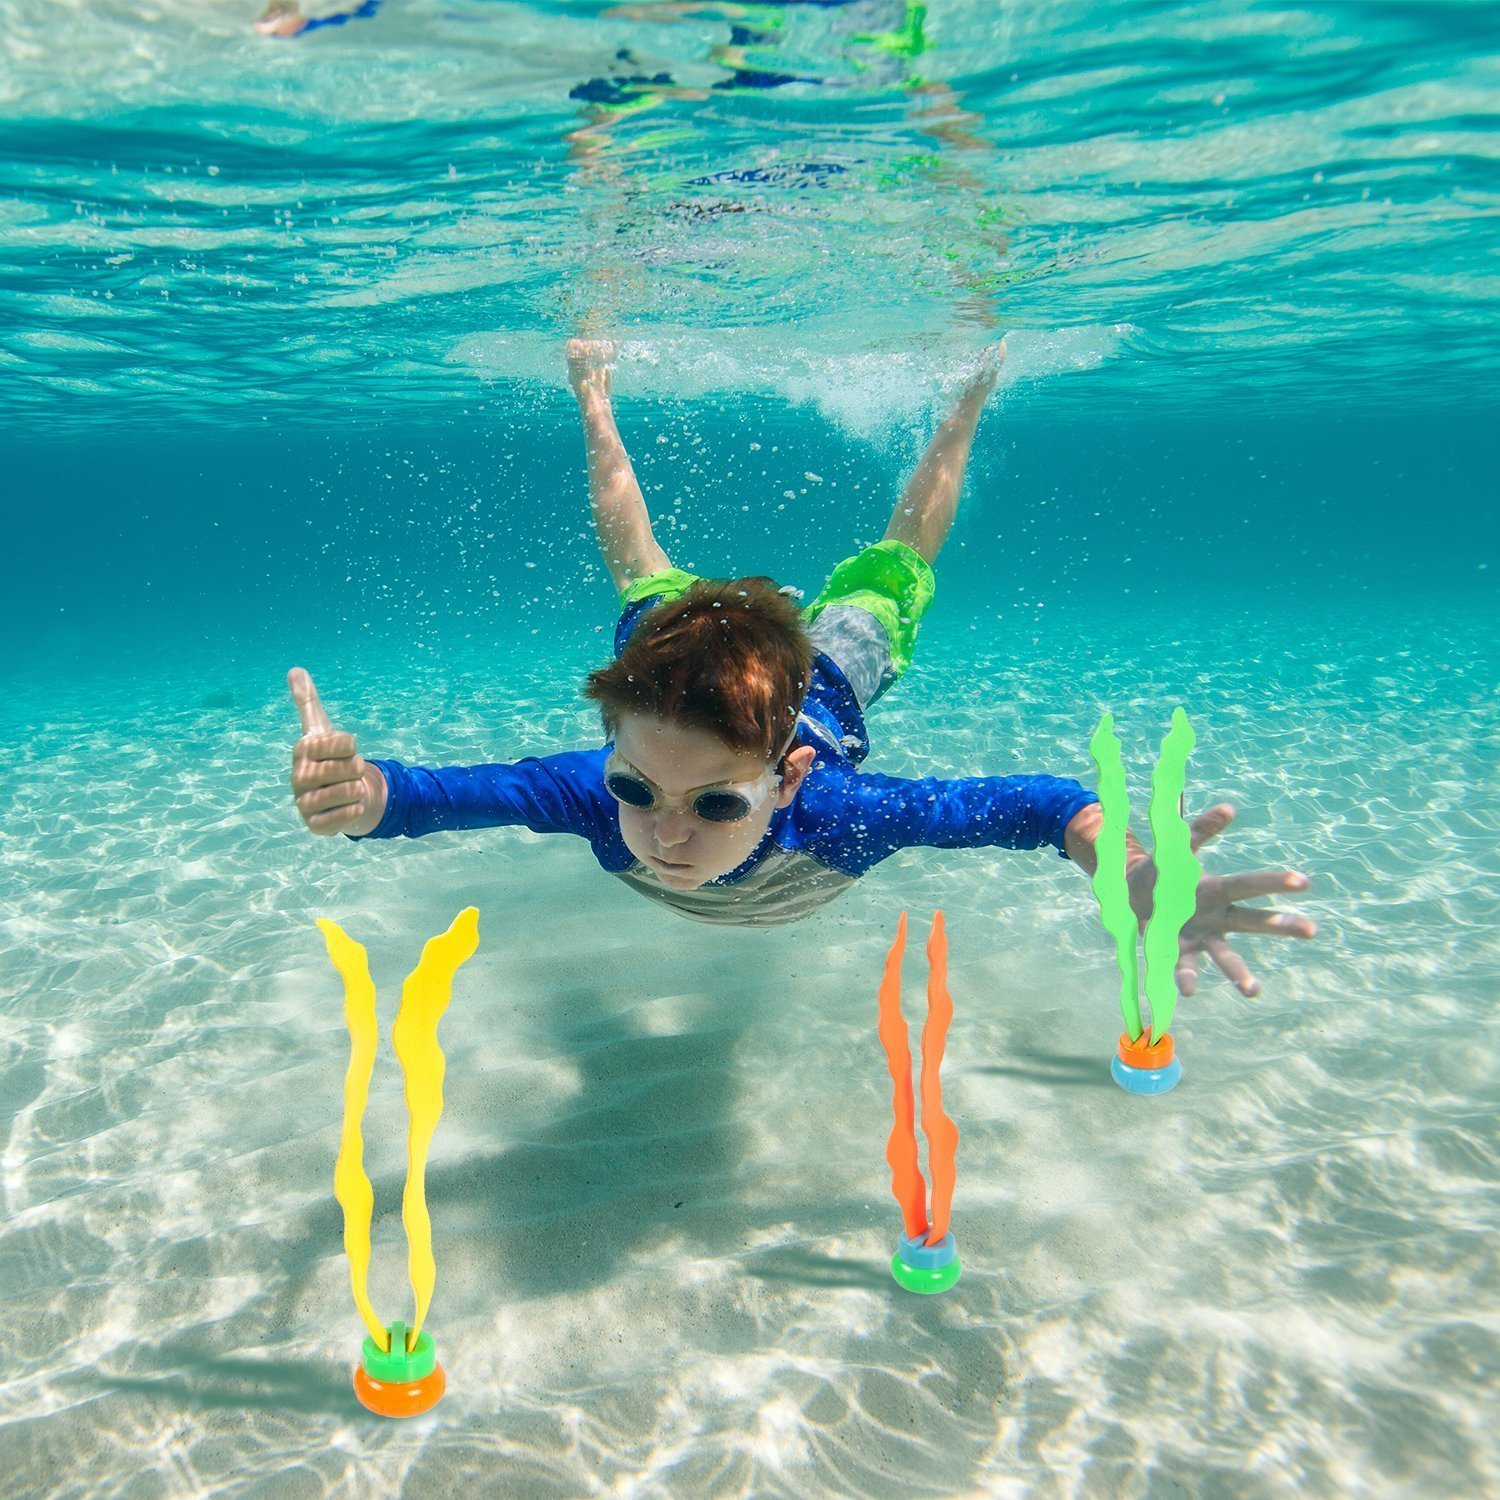 LEZHI Underwater Swimming/Diving Pool Toy Rings including (4) Diving Rings, (4) Diving Torpedos Bandits,(3) Stringy Octopus, (6) Diving Dolphins,(8) with Under Water Treasures Gift Set Bundle by LEZHI (Image #3)